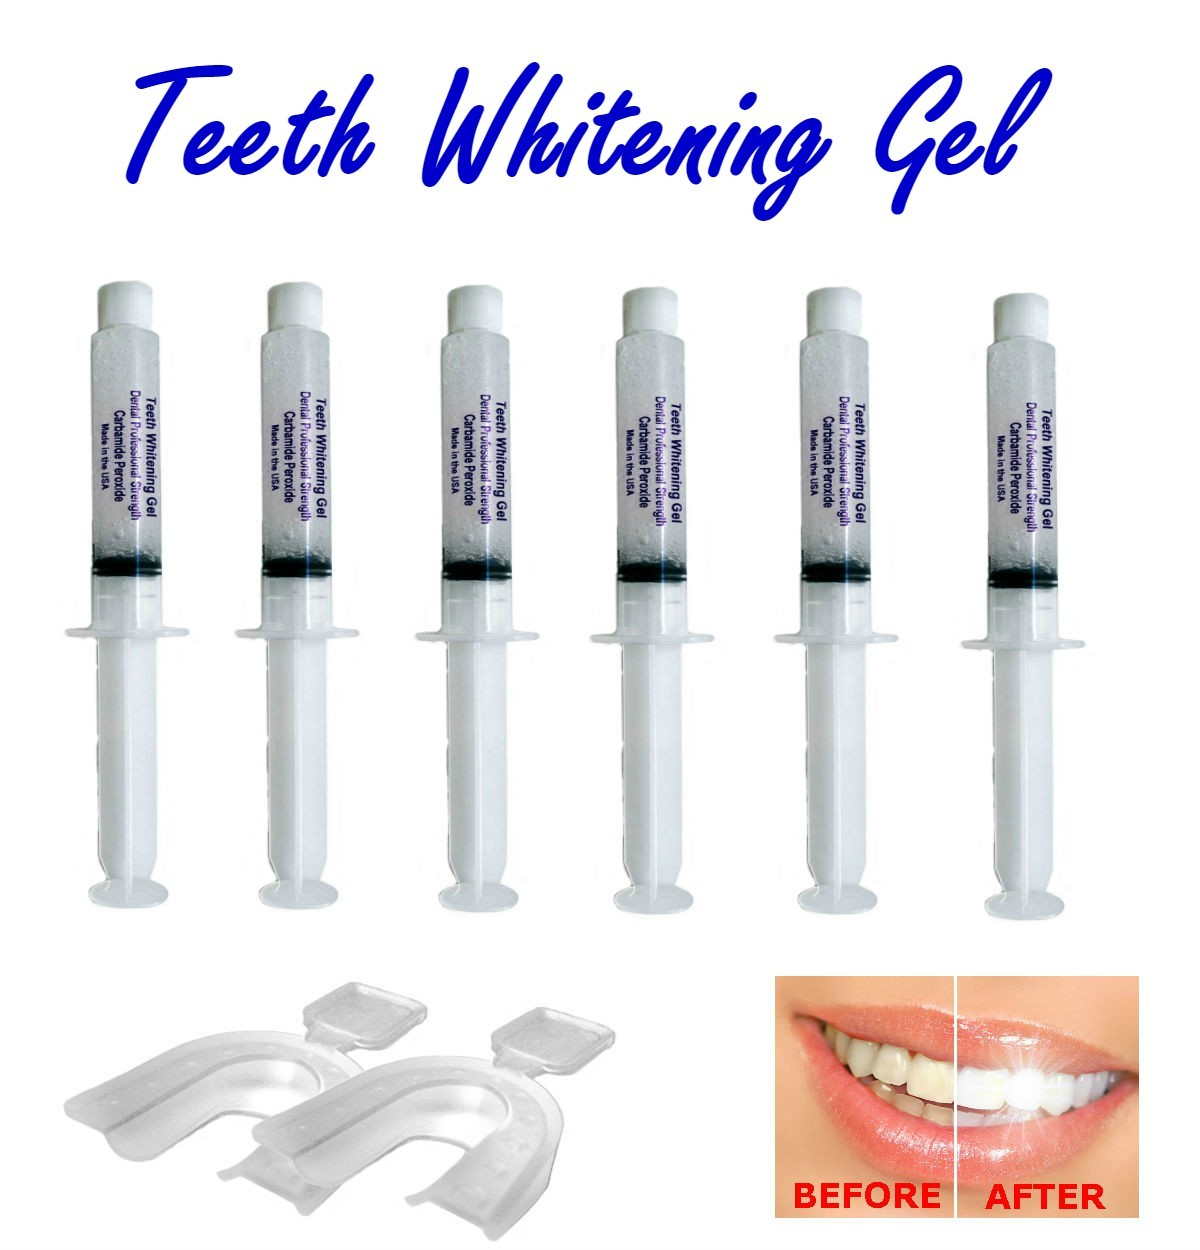 Primary image for 6 Syringes of 35% Teeth Whitening Professional Gel Syringes + FREE 2 Trays - USA